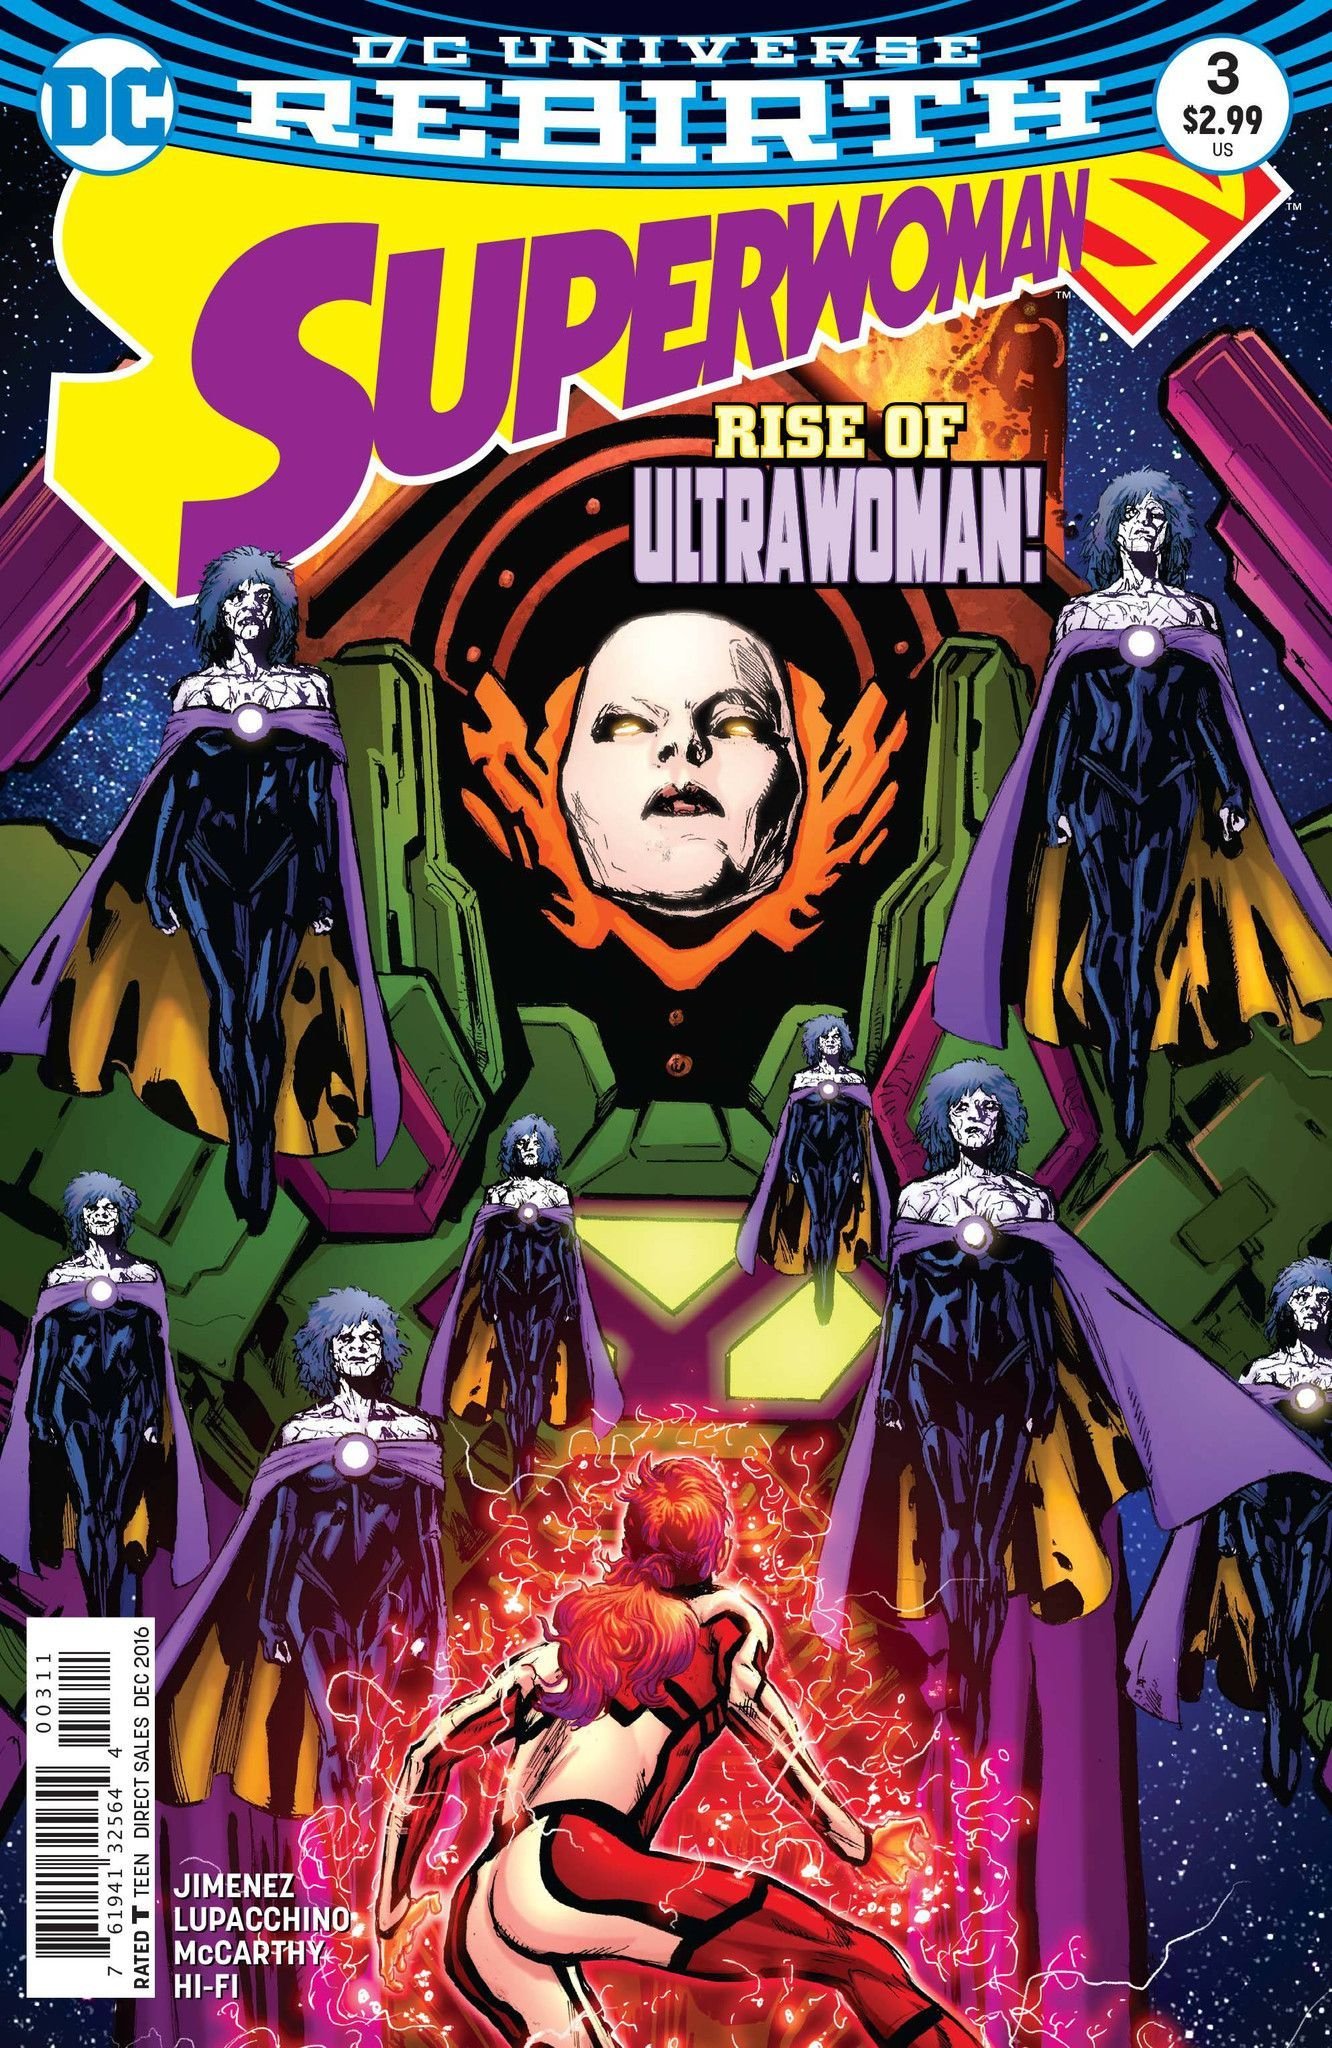 """""""WHO IS SUPERWOMAN?"""" part three! Ultra Woman is revealed, and her unstoppable Bizarress army are hunting for Superwoman! But that's not the only challenge facing the new hero-Steel has made a terrifyi"""